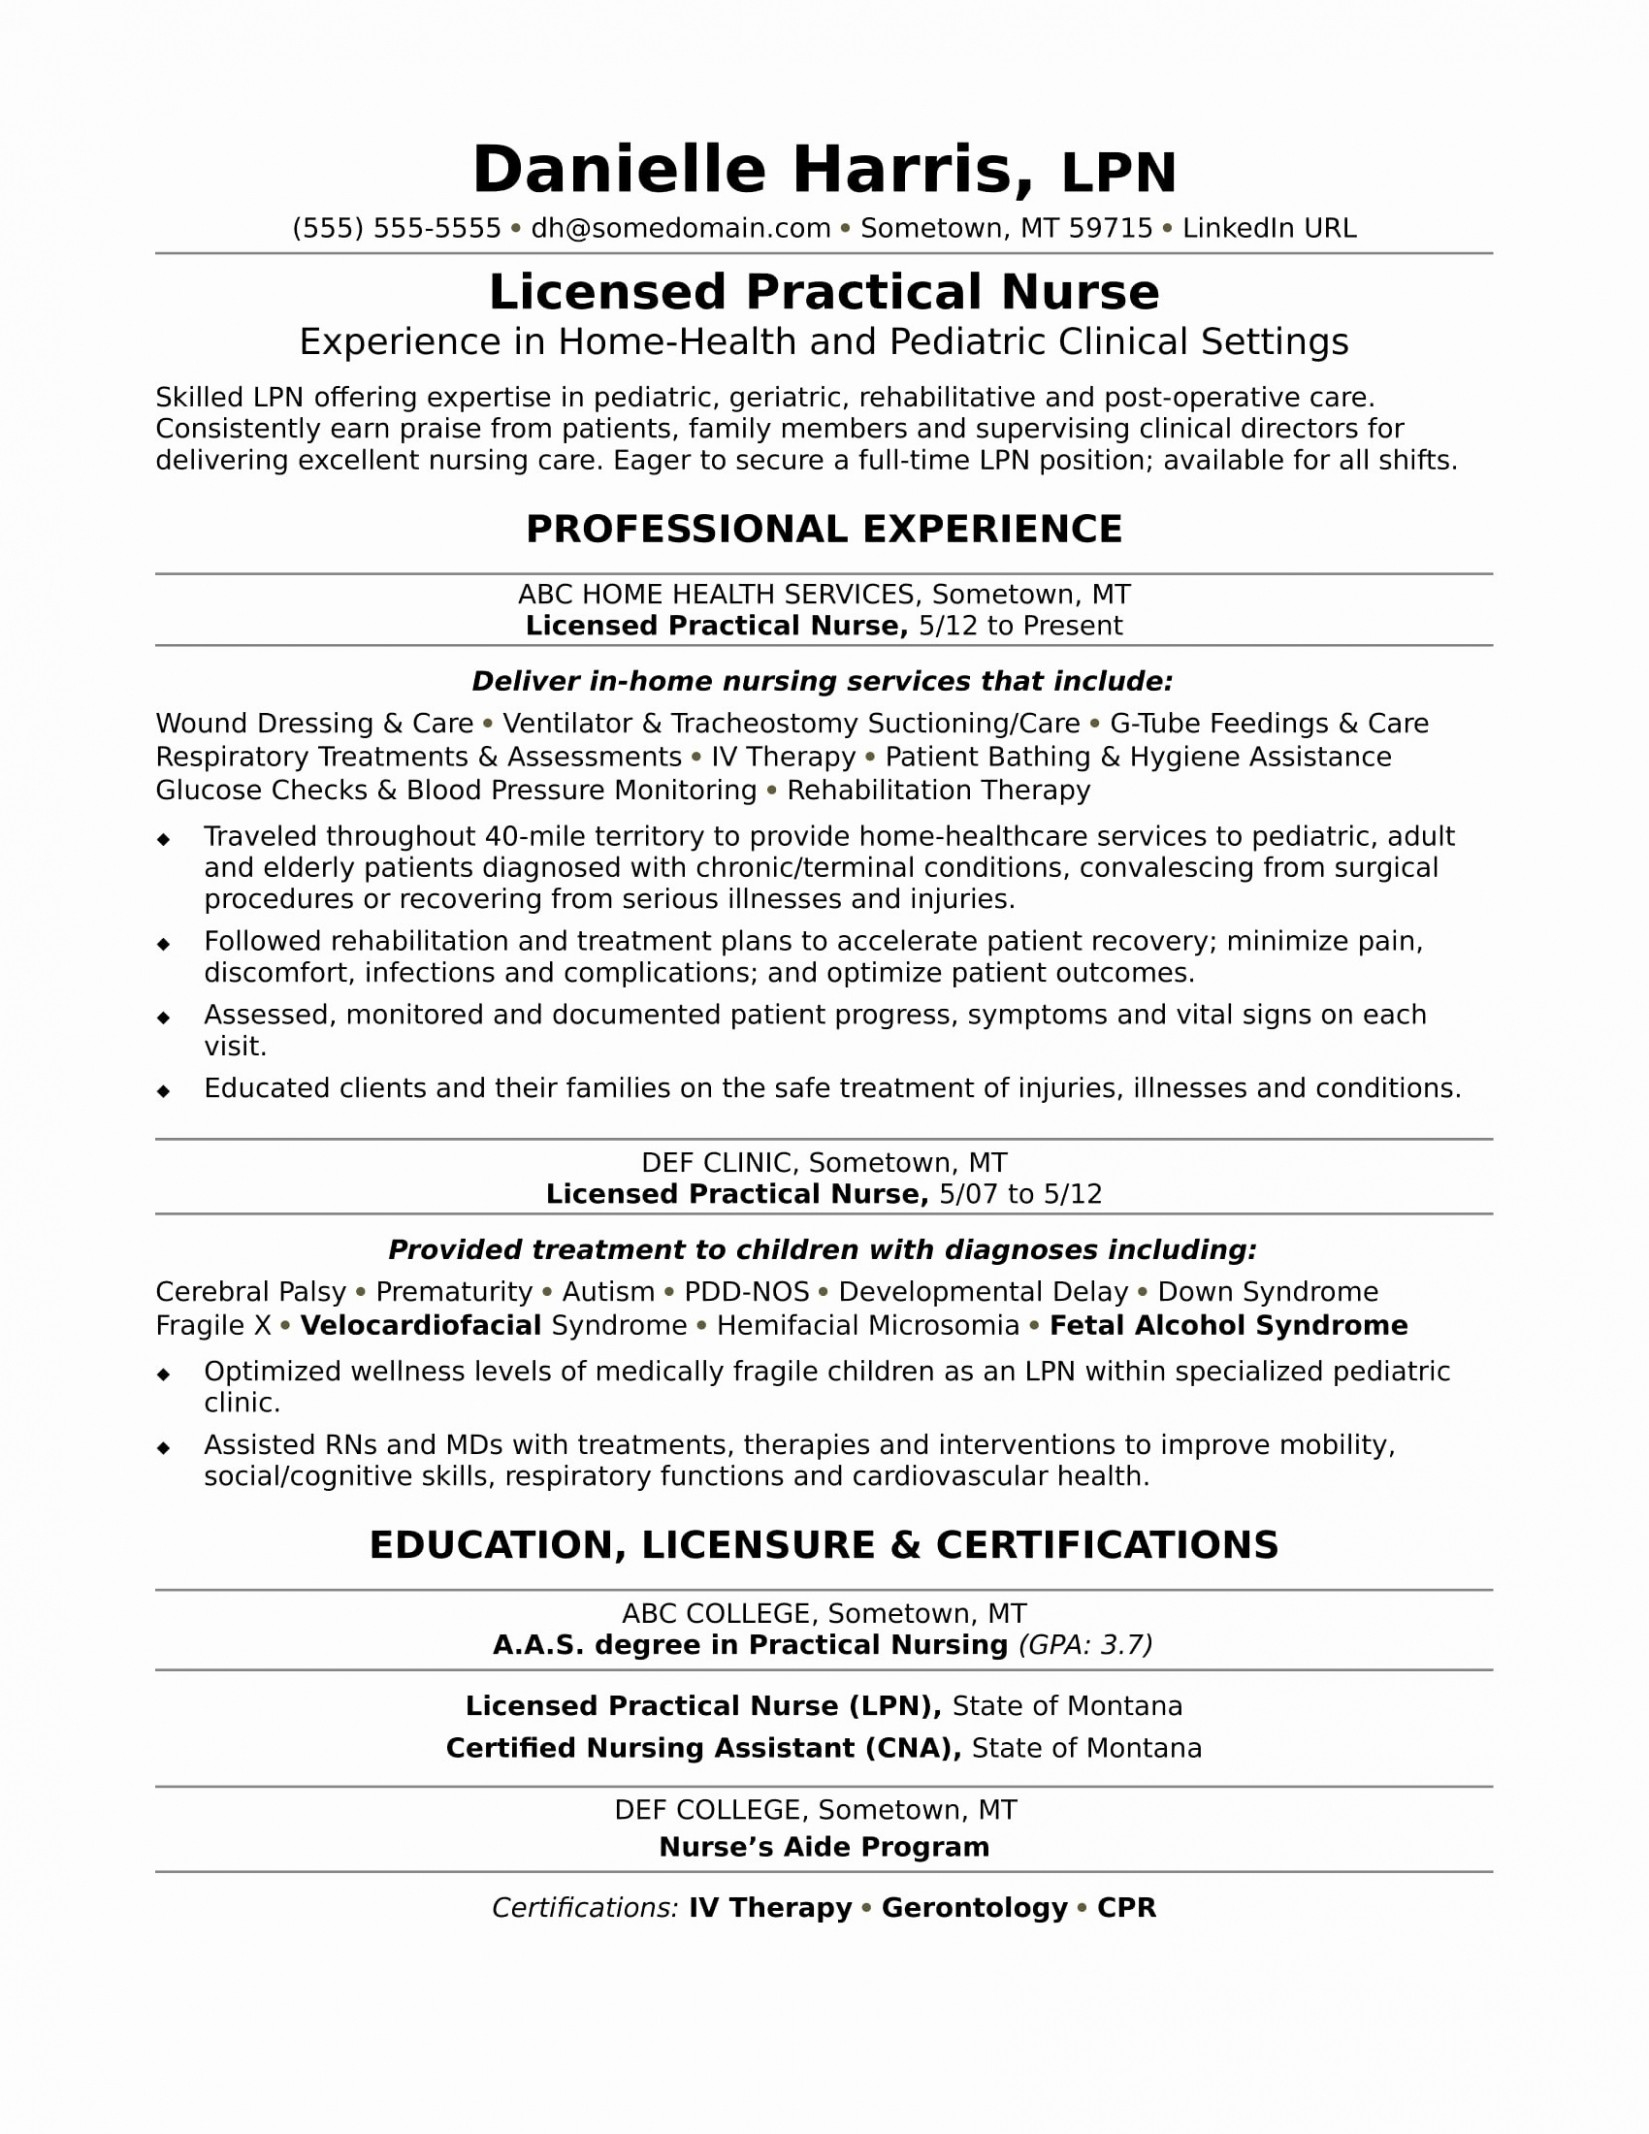 lpn nurse resume template Collection-Example Lpn Resume Inspirationa Elegant New Nurse Resume Awesome Nurse Resume 0d Wallpapers 42 6-k